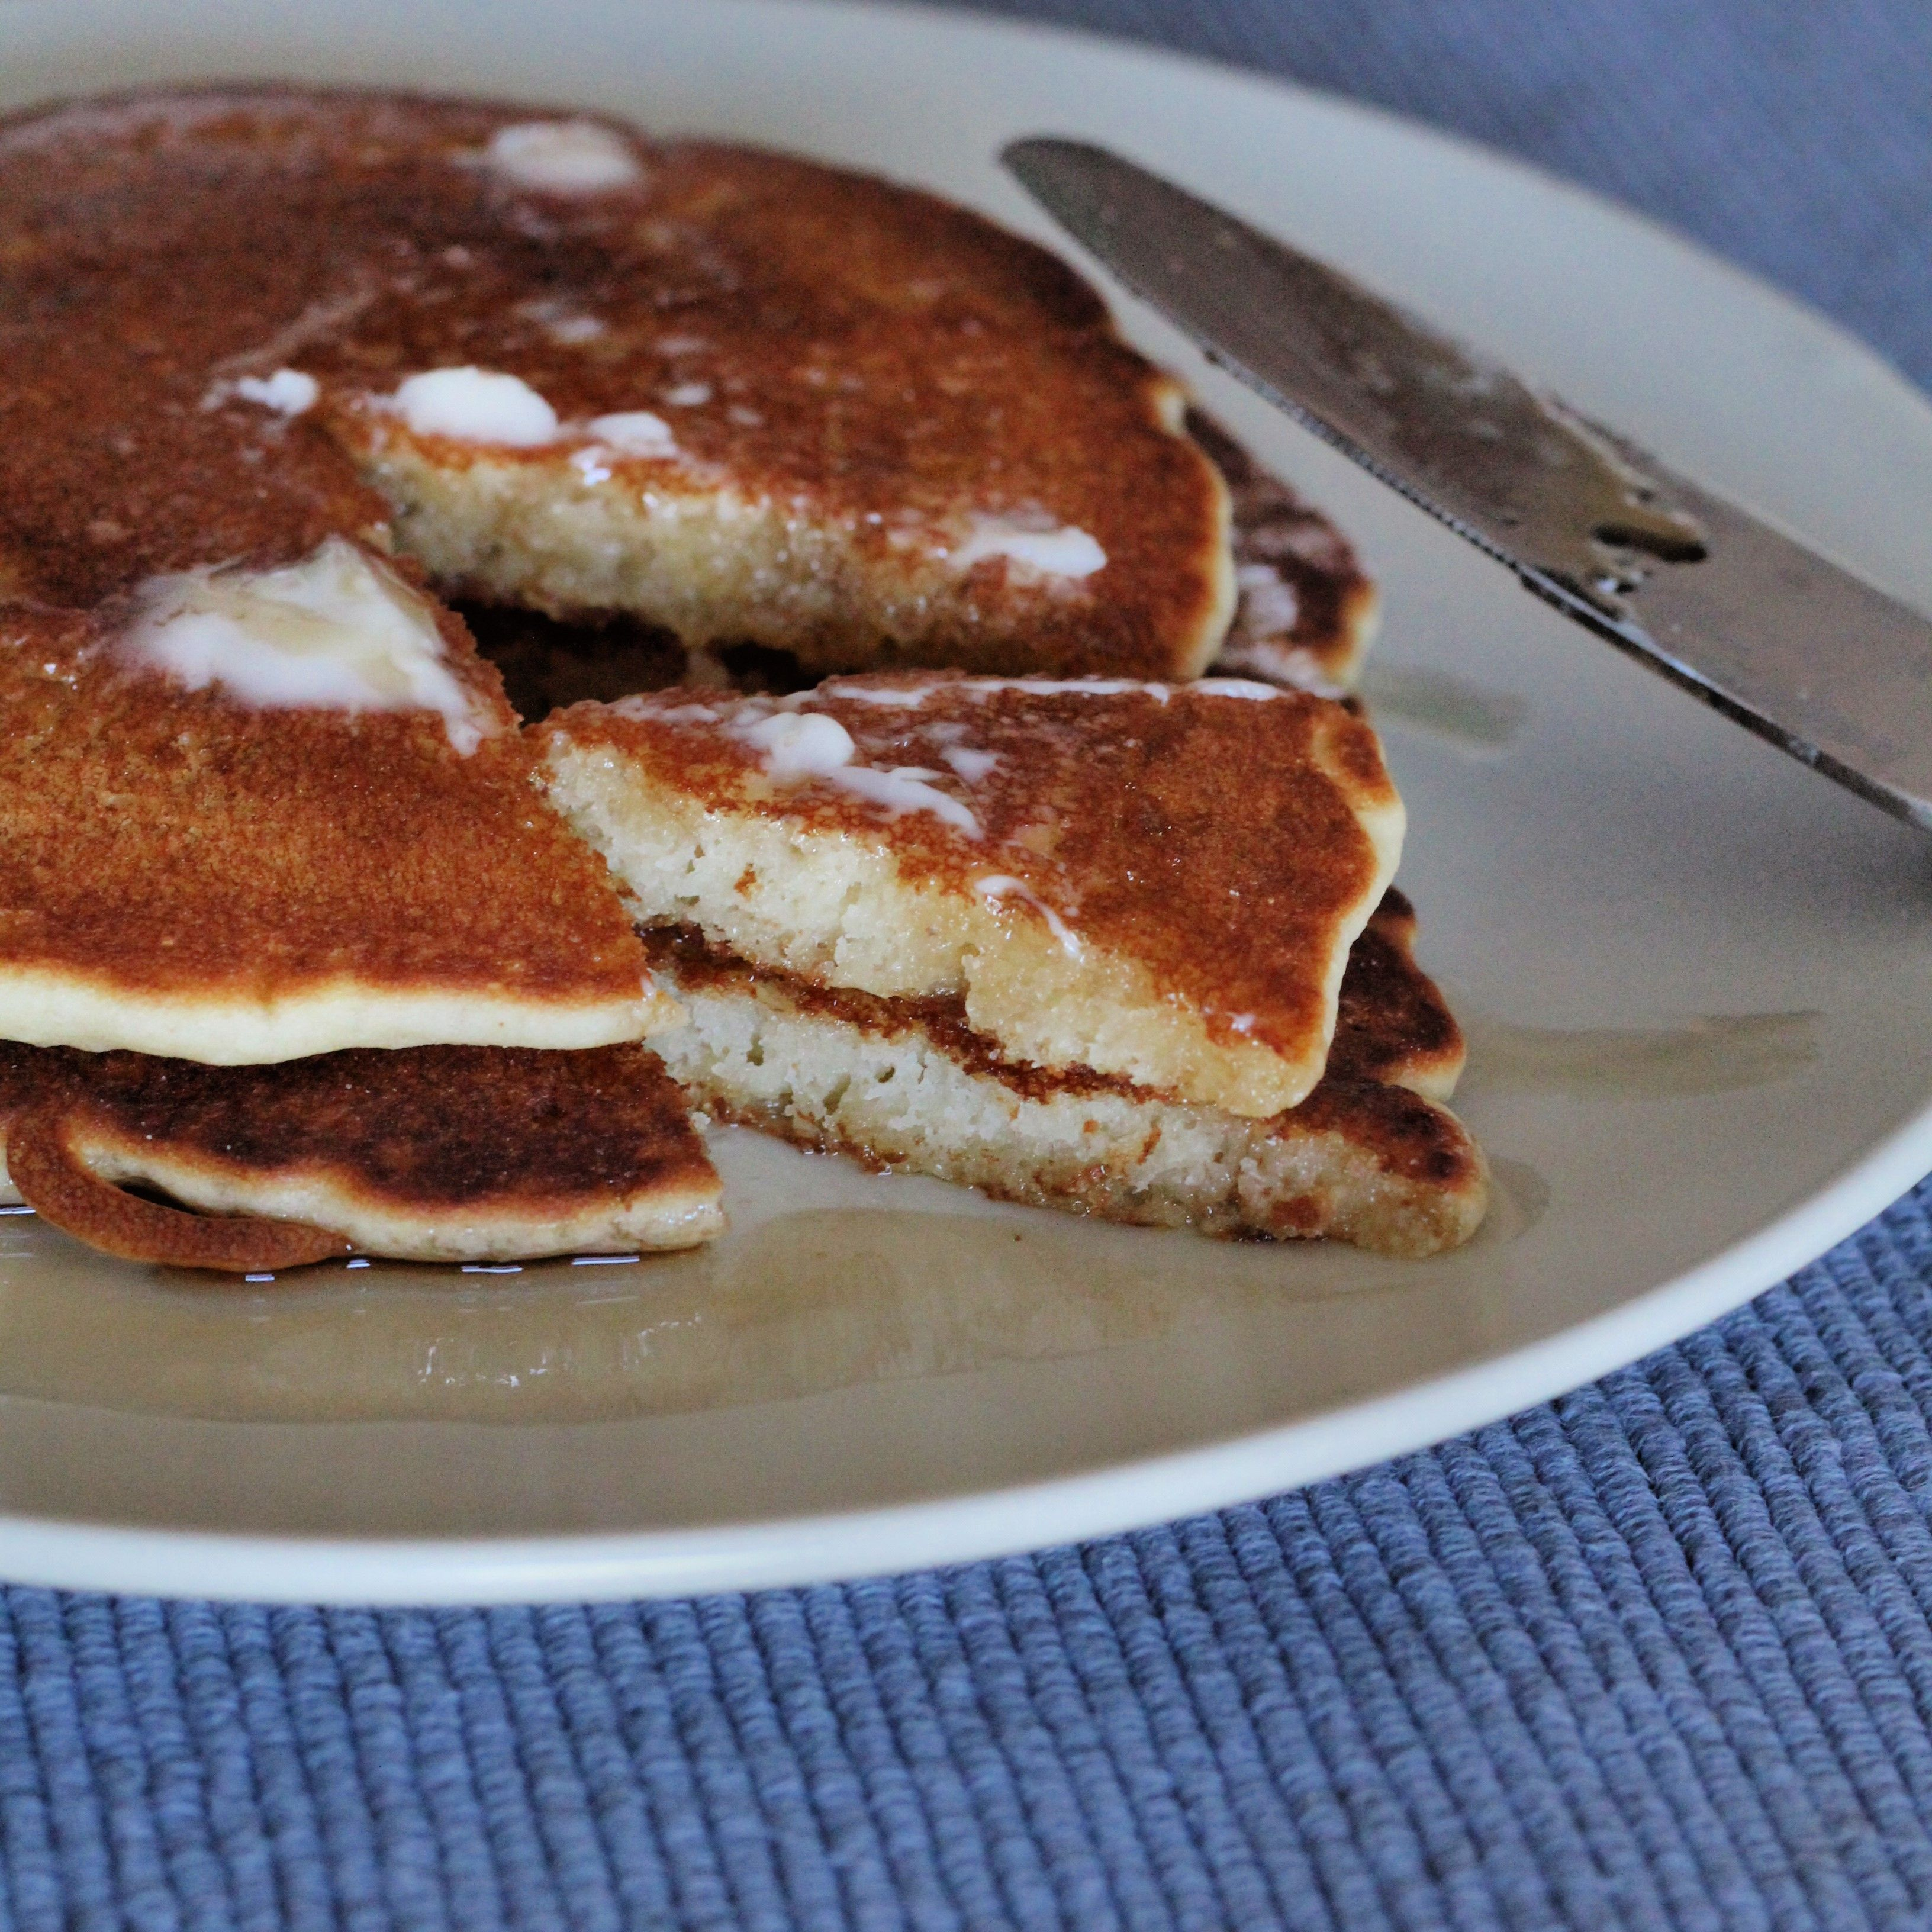 Traditional Buttermilk Pancake Taste Without The Gluten Dense And Fluffy At The Gluten Free Buttermilk Pancakes Buttermilk Pancakes Pancake Recipe Buttermilk